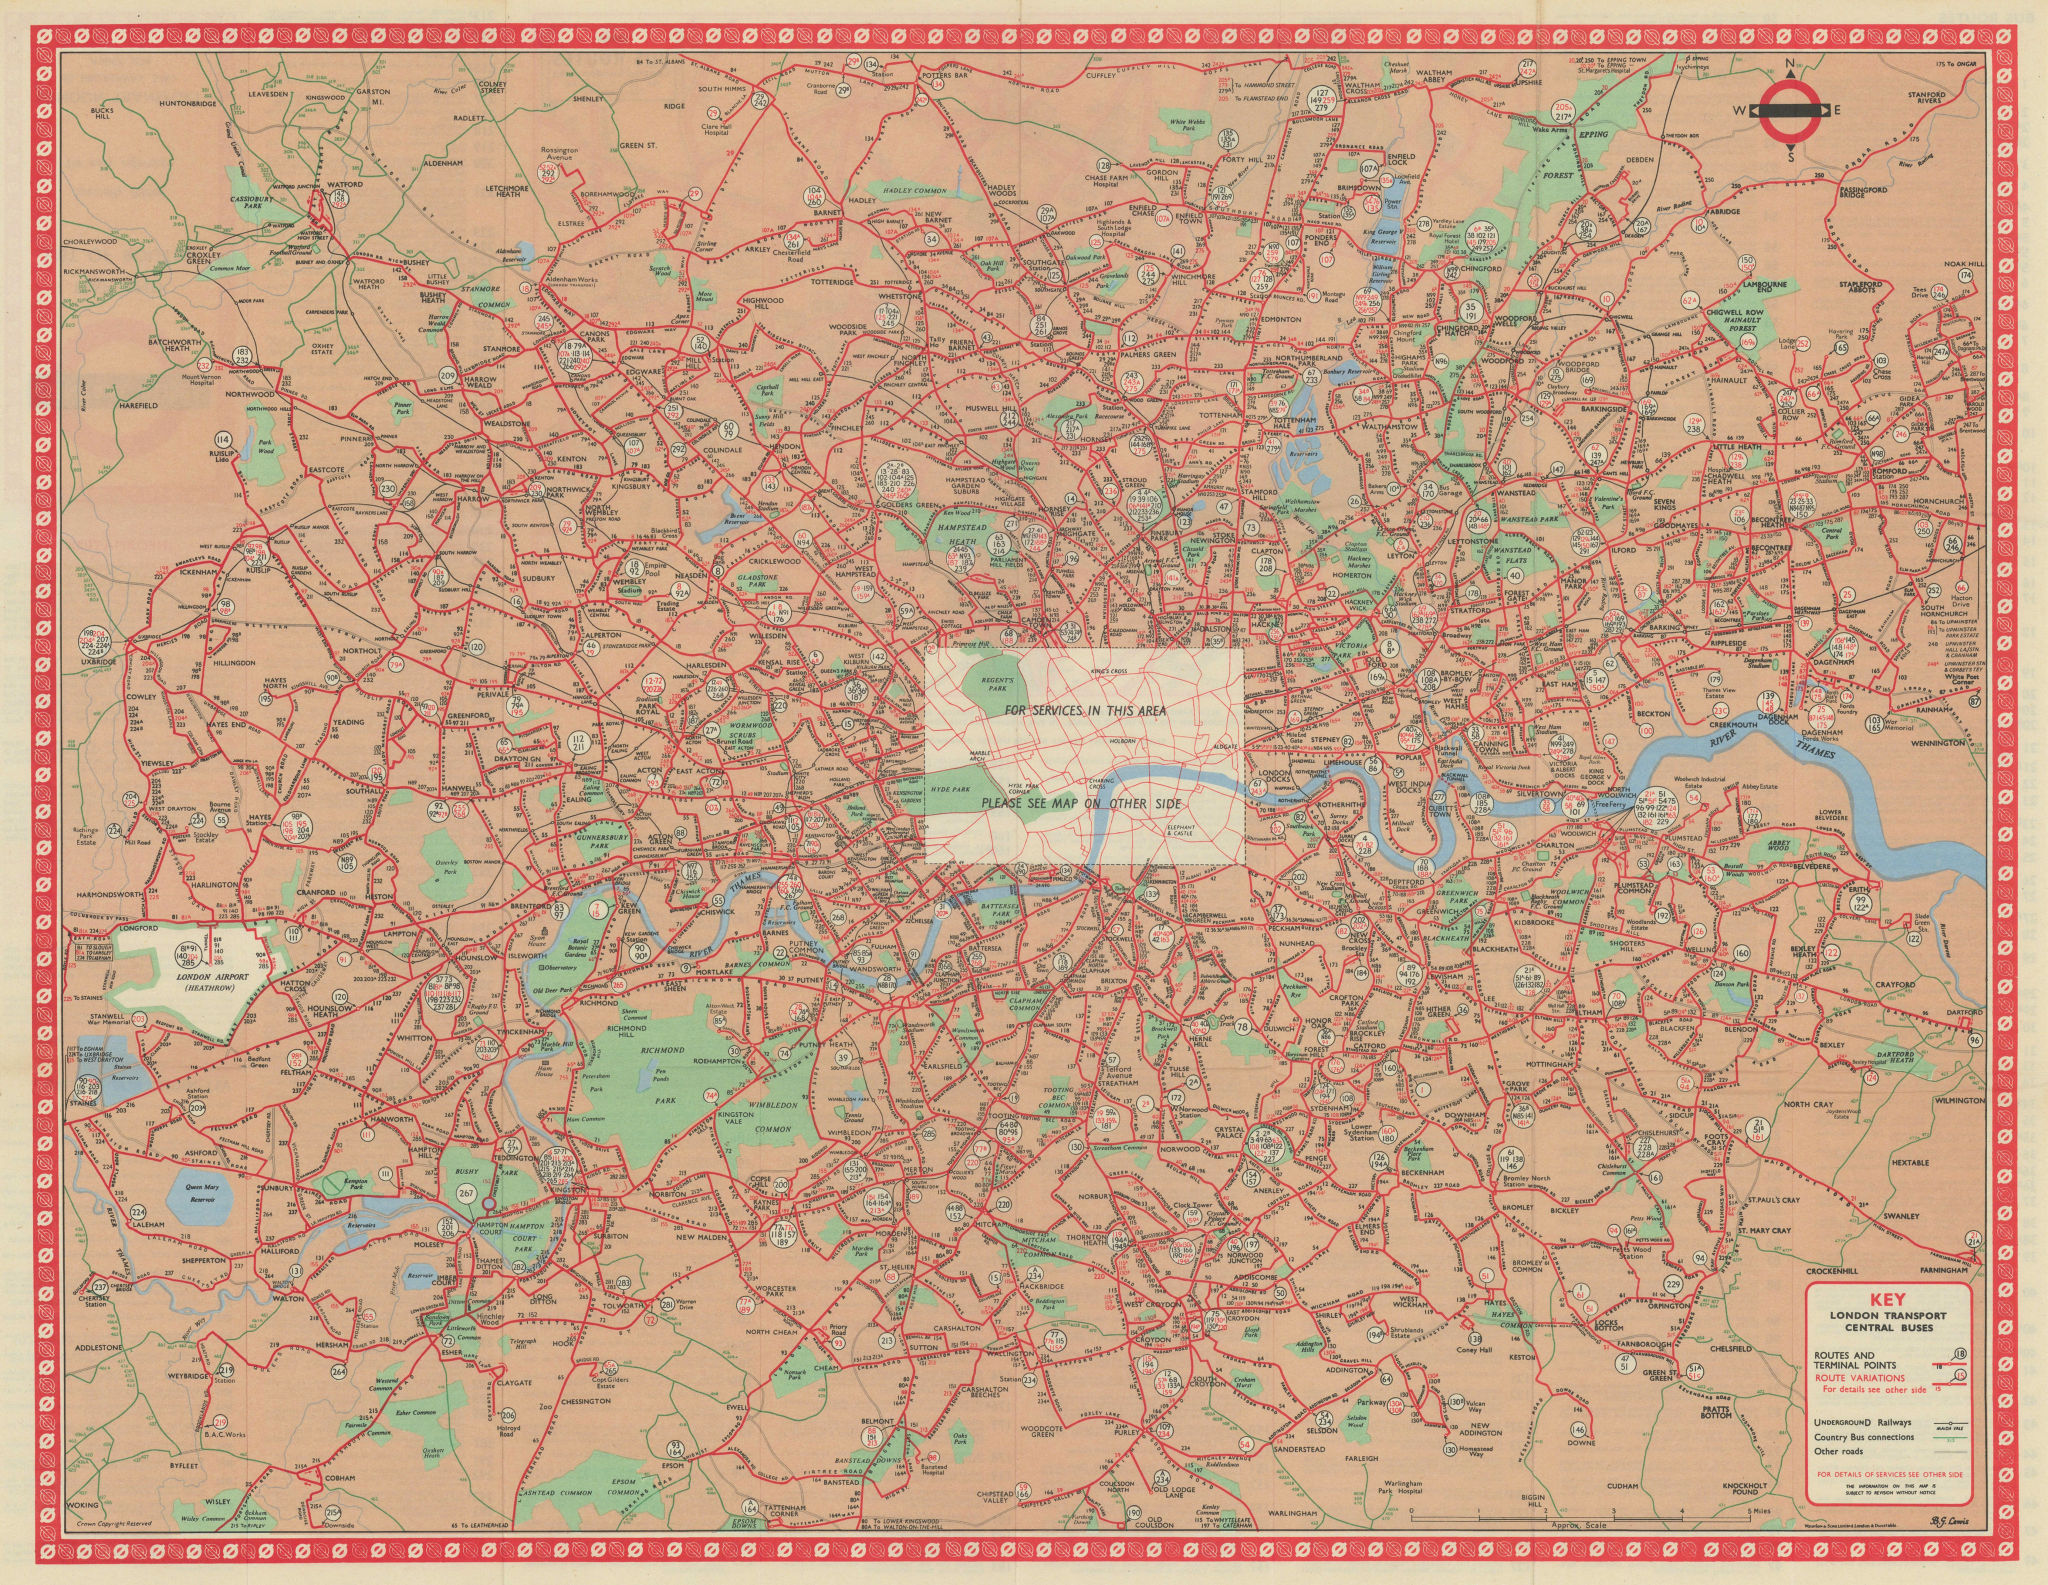 London Transport Central Buses map and list of routes. LEWIS #3 1966 old